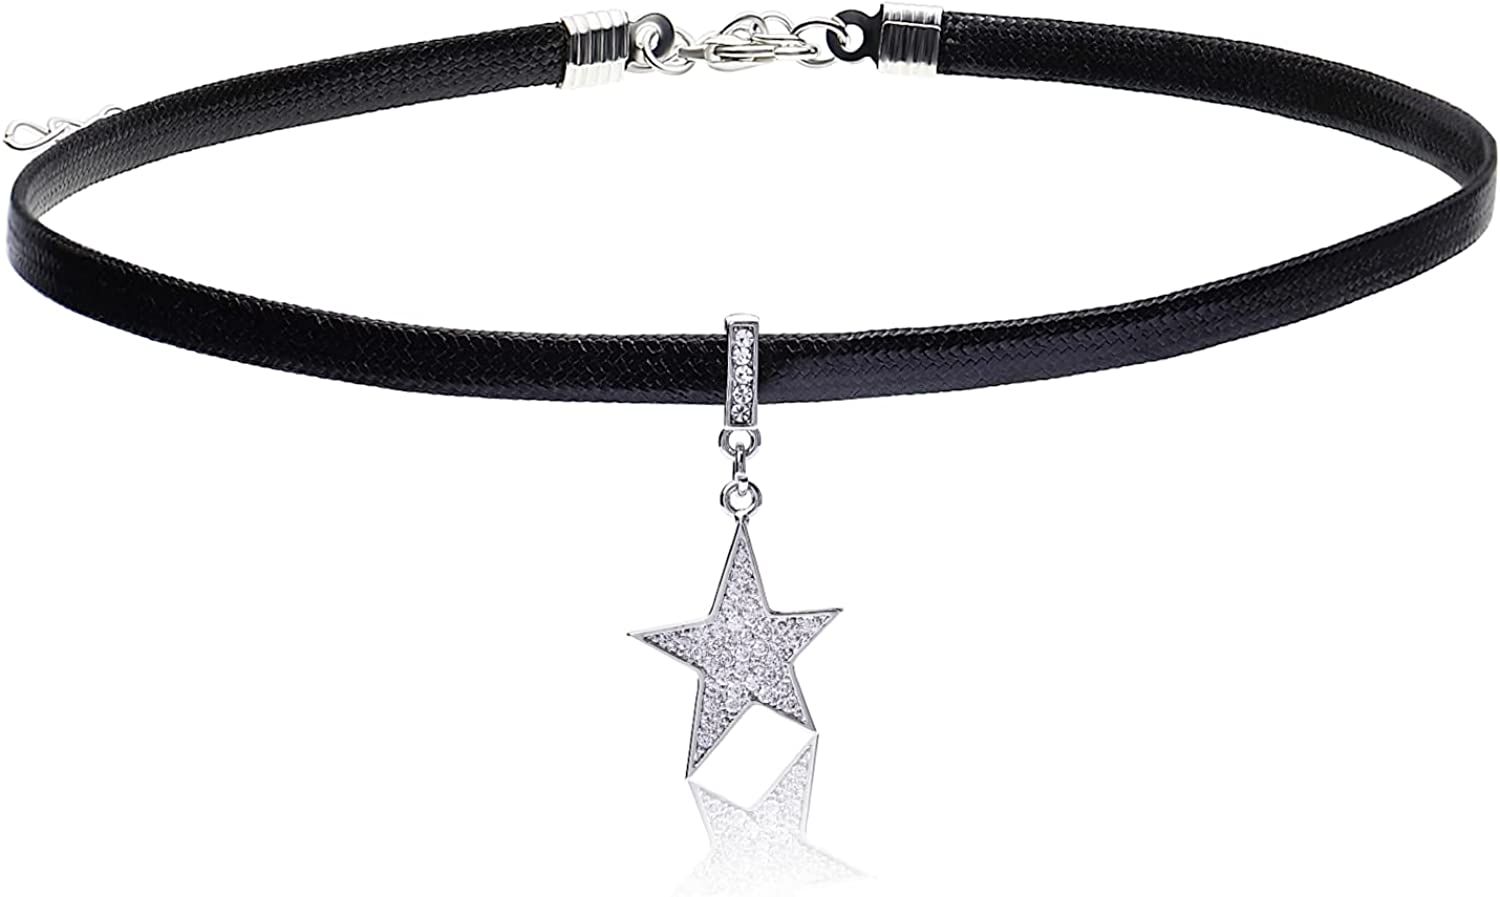 EMONJAY choker necklaces for women black clover jewelry black leather lucky gothic pendant